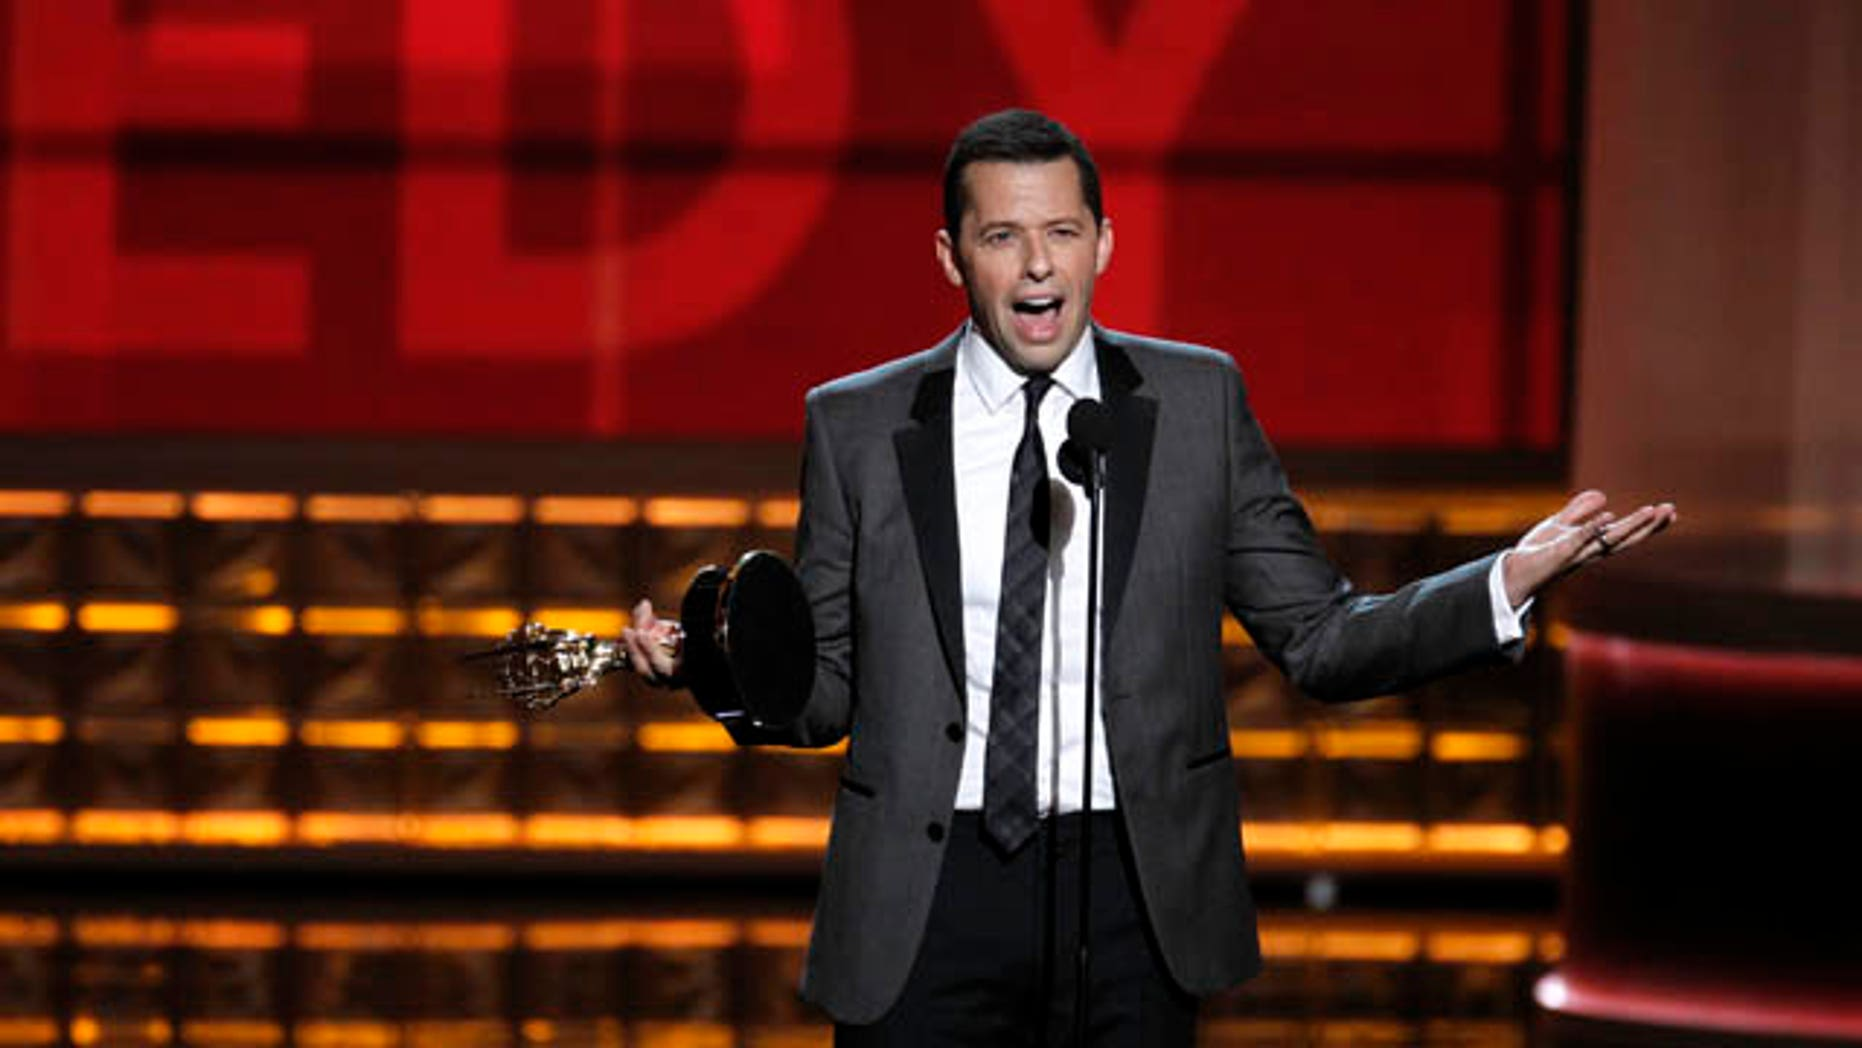 """Jon Cryer accepts the award for outstanding lead actor in a comedy series for his role in """"Two and a Half Men"""" at the 64th Primetime Emmy Awards in Los Angeles, September 23, 2012.    REUTERS/Lucy Nicholson (UNITED STATES  - Tags: ENTERTAINMENT)  (EMMYS-SHOW)"""